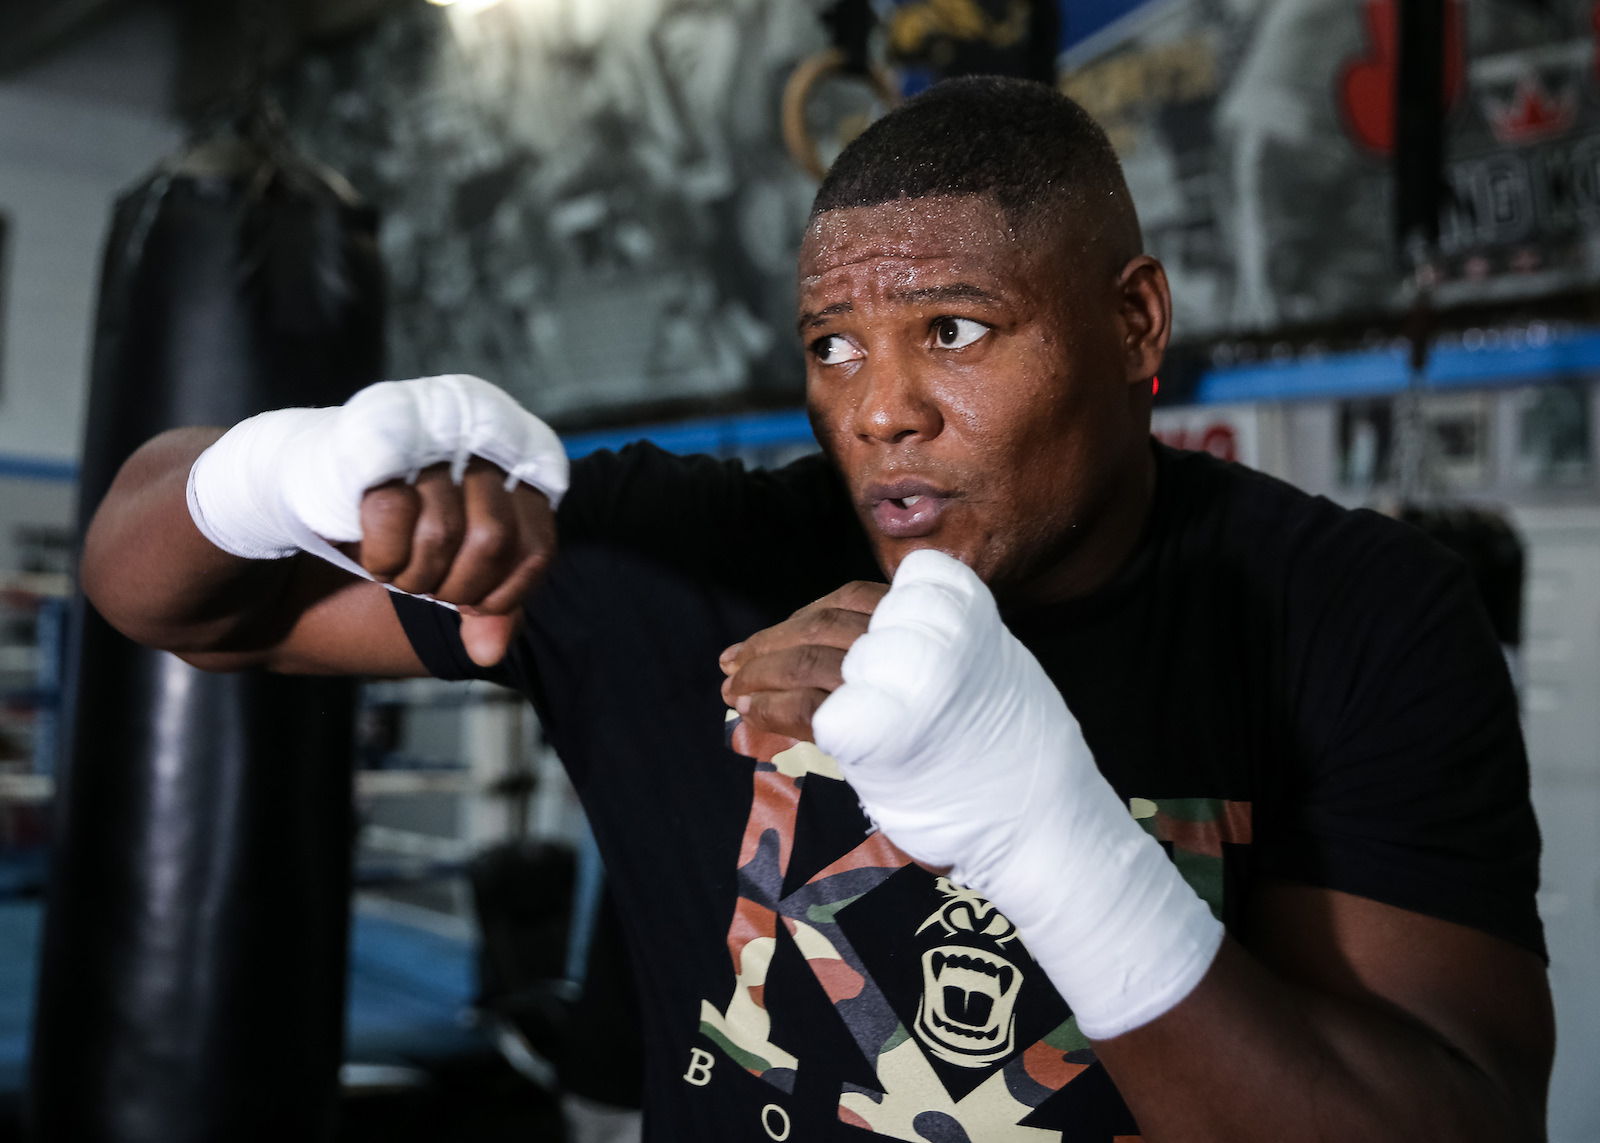 Boxer Luis Ortiz works out for the media in Miami, FL. Shot for Showtime Boxing.